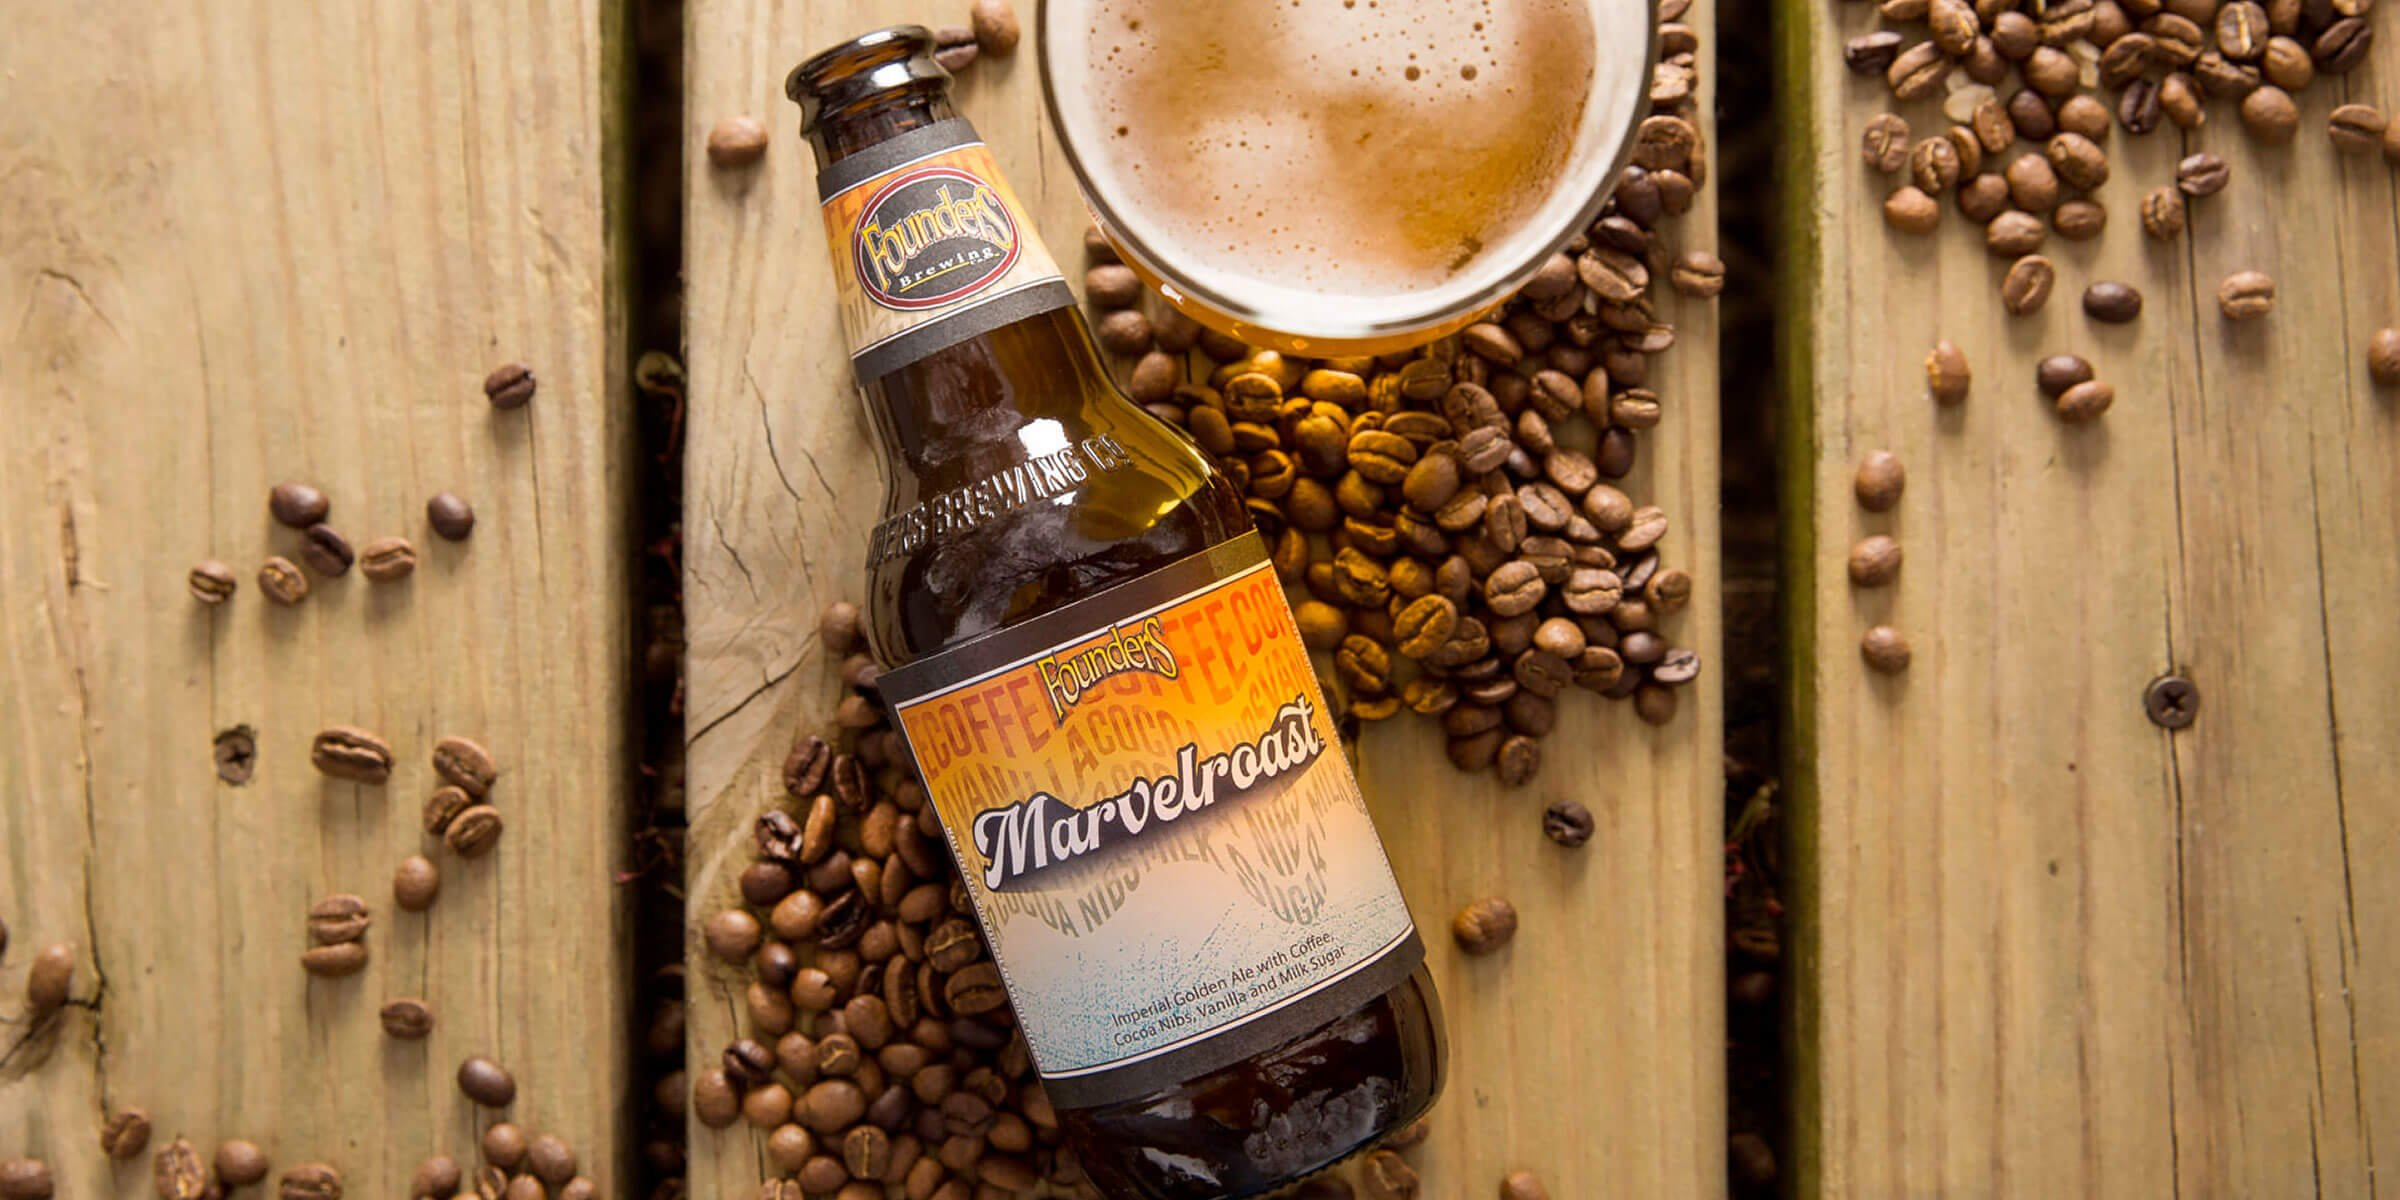 Founders Brewing Co. announced the Marvelroast Imperial Golden Ale as the latest addition to the Limited Series lineup, available nationwide this July.